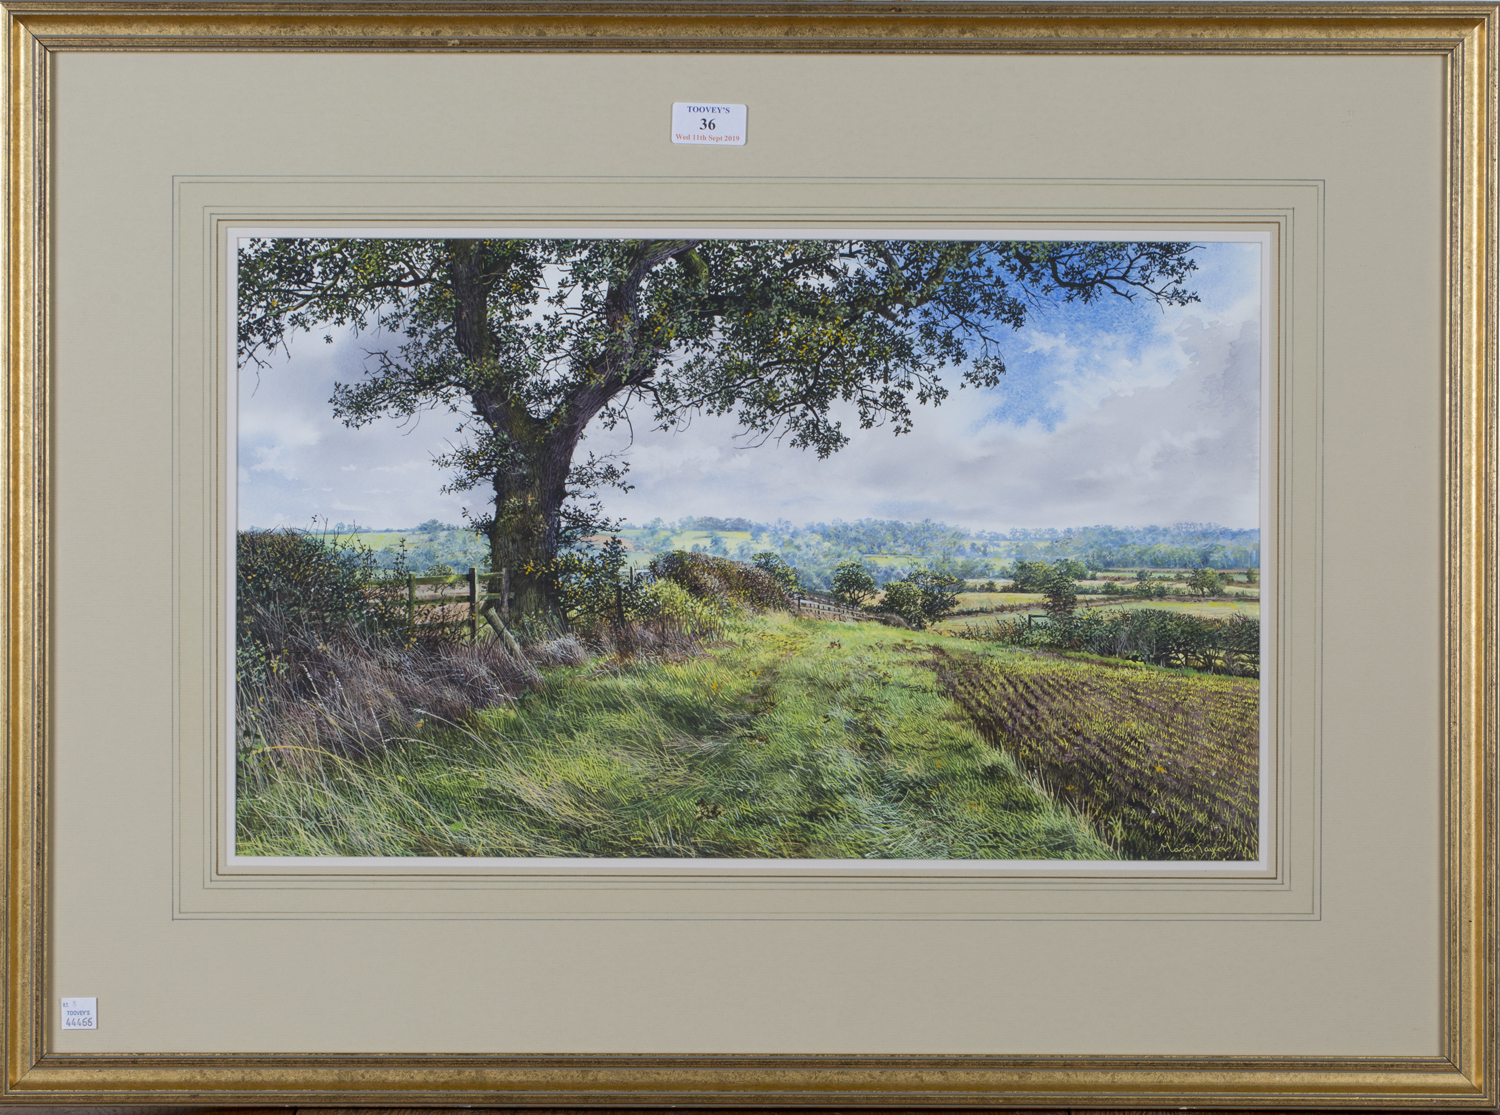 Lot 36 - Martin Taylor - 'Towards Althorpe, Boys day out looking for Horseshoes', 20th century watercolour